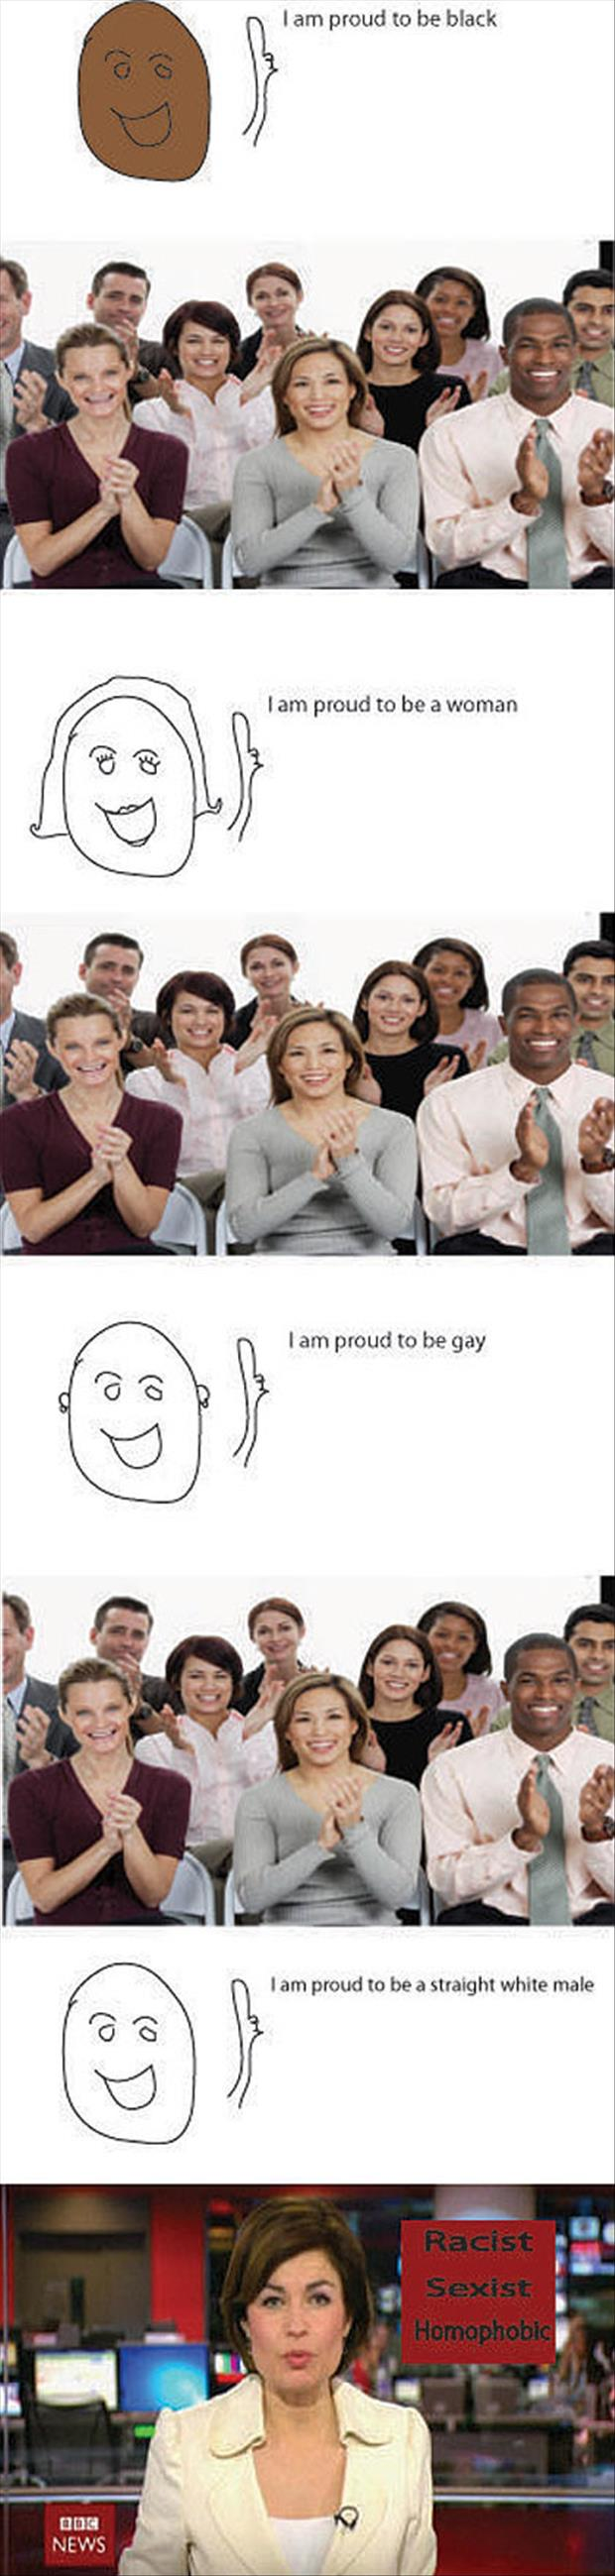 racist pictures